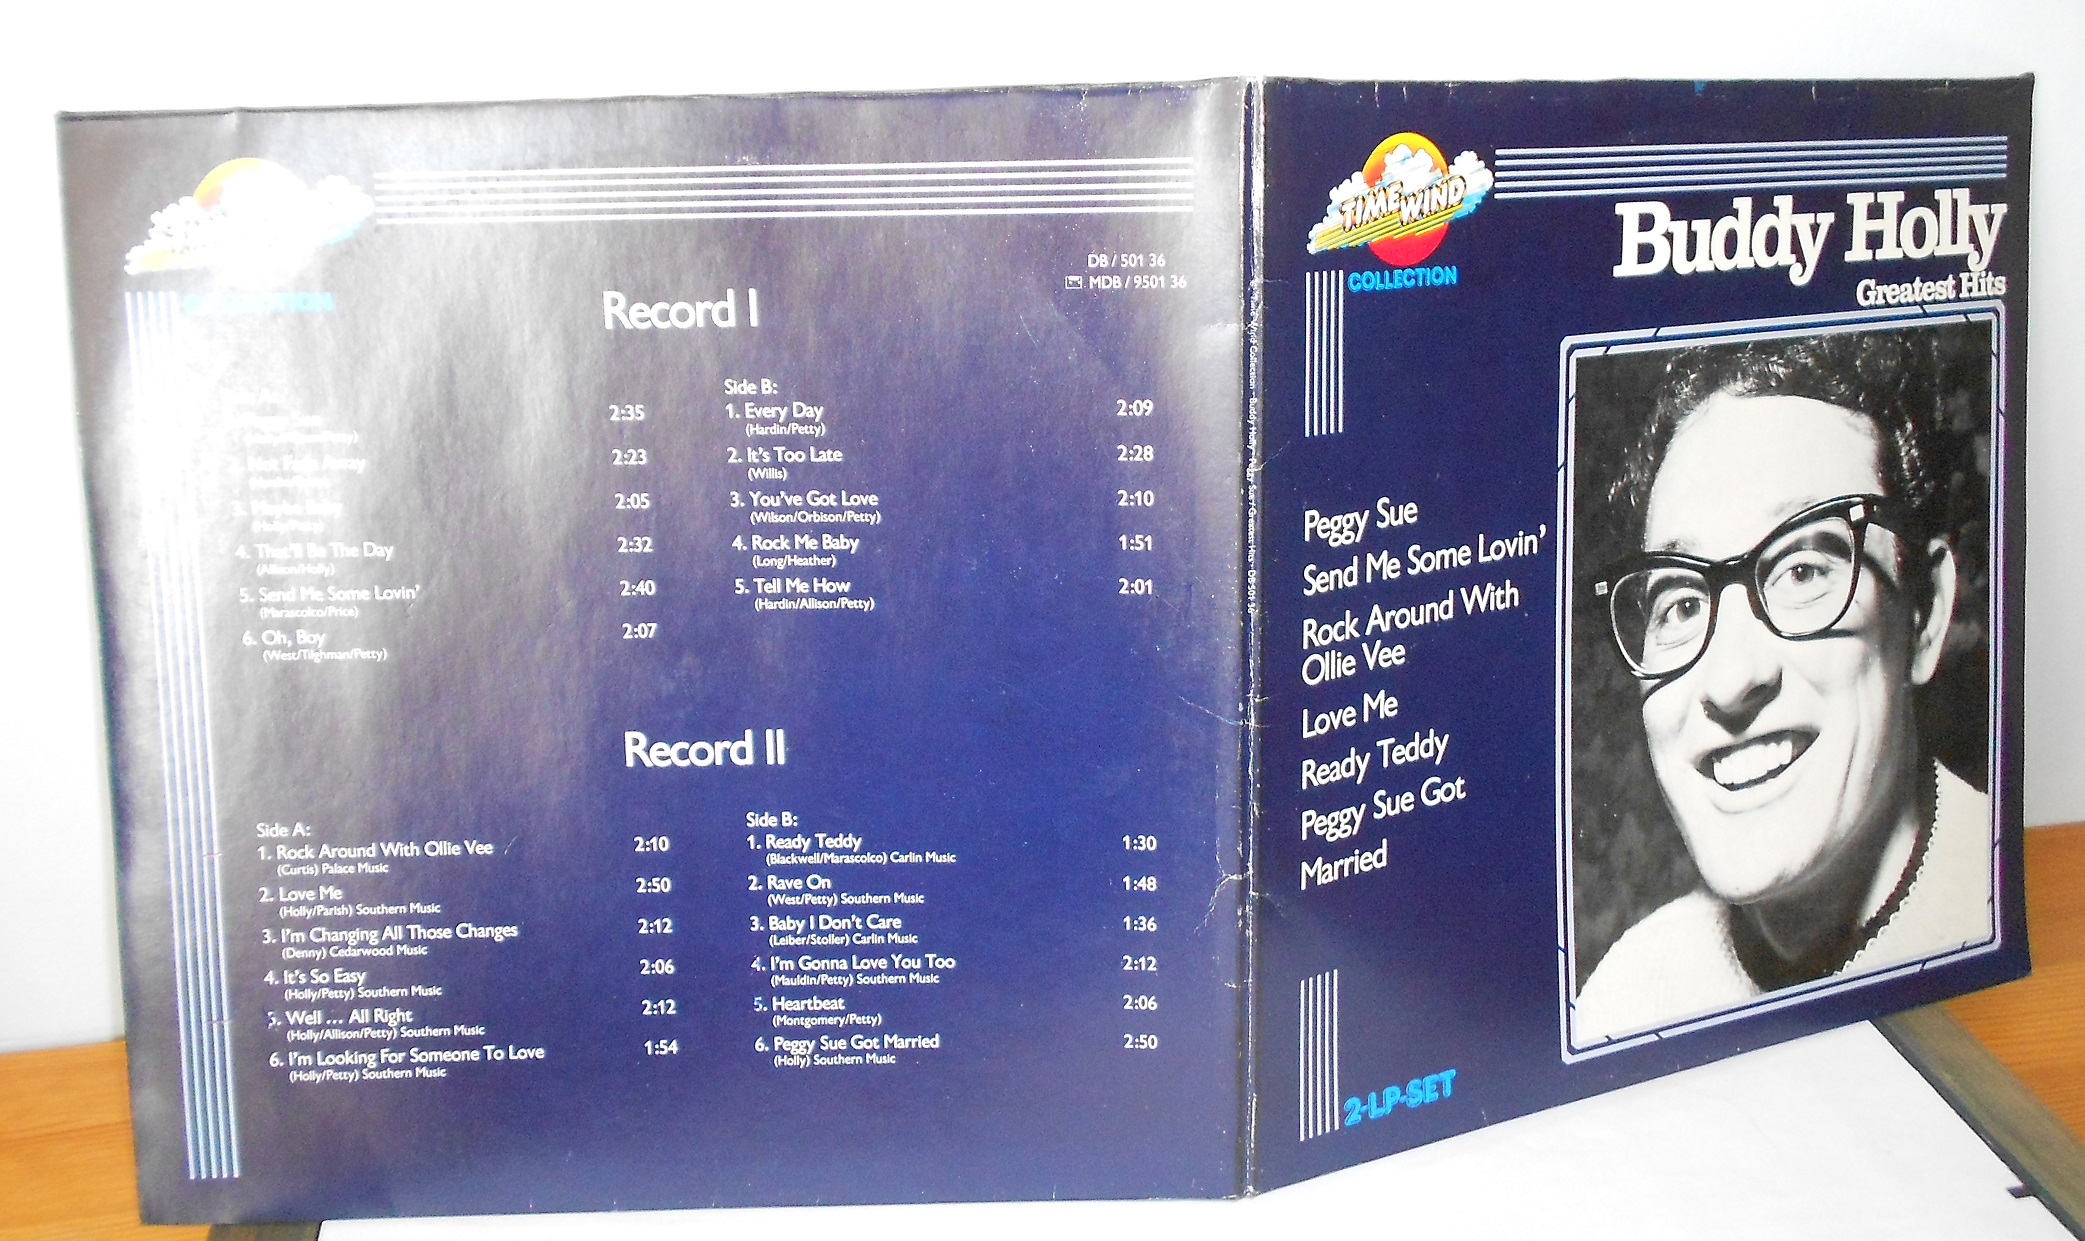 Buddy Holly - Greatest Hits (LP)